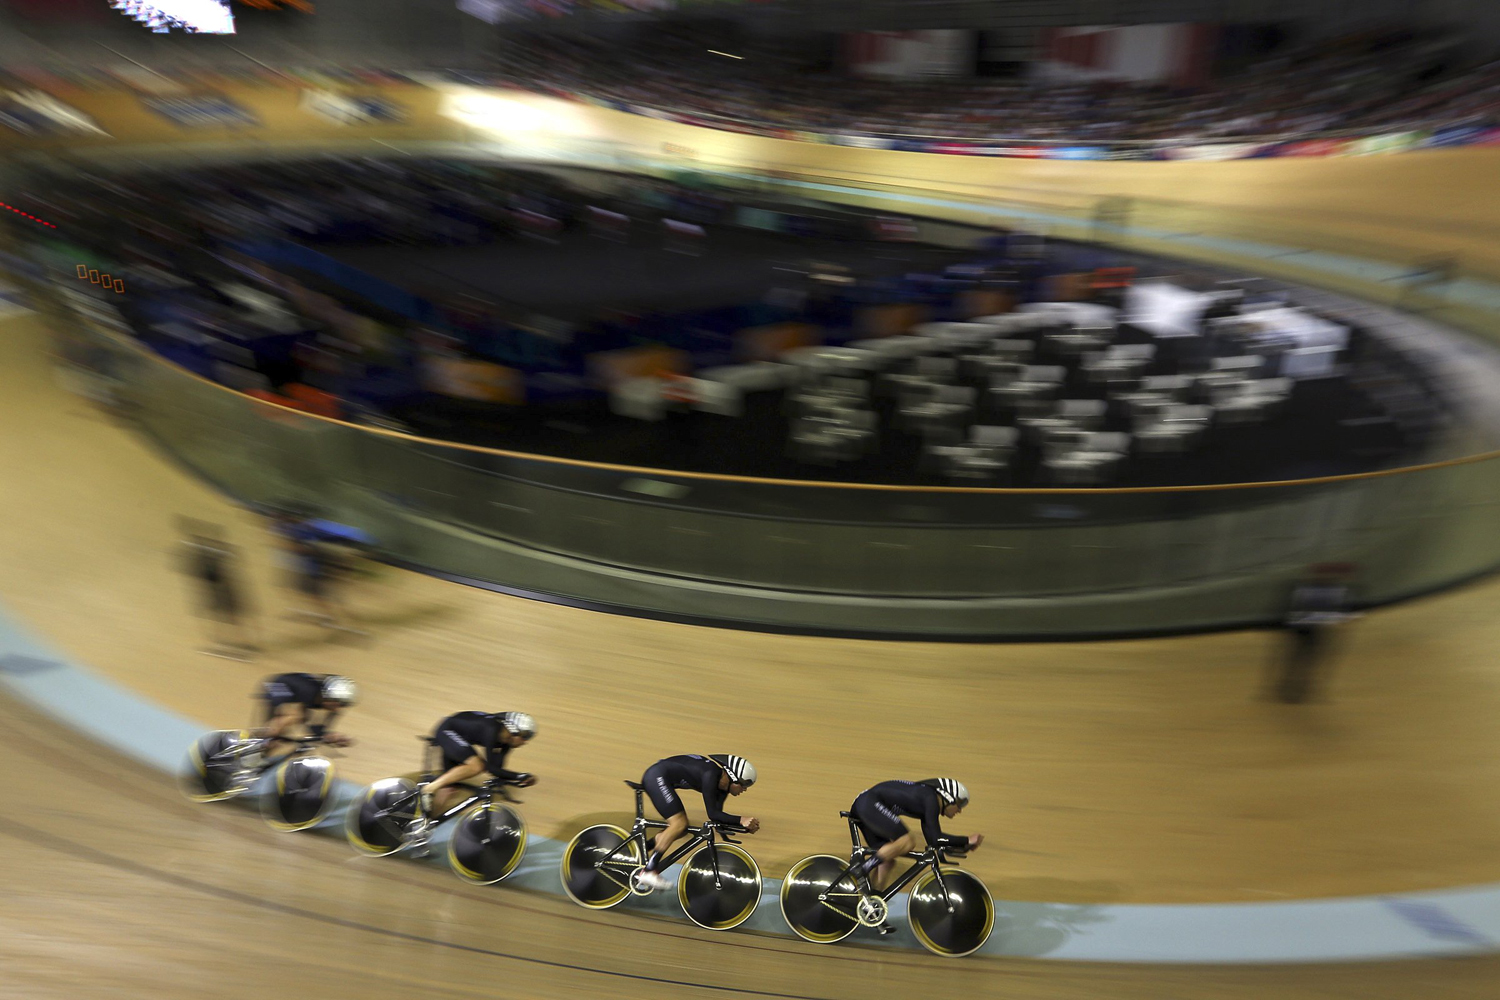 Jul. 24, 2014. Members of the New Zealnad team compete during the Men's team pursuit 4000m qualifying at the Velodrome in Glasgow, Scotland.